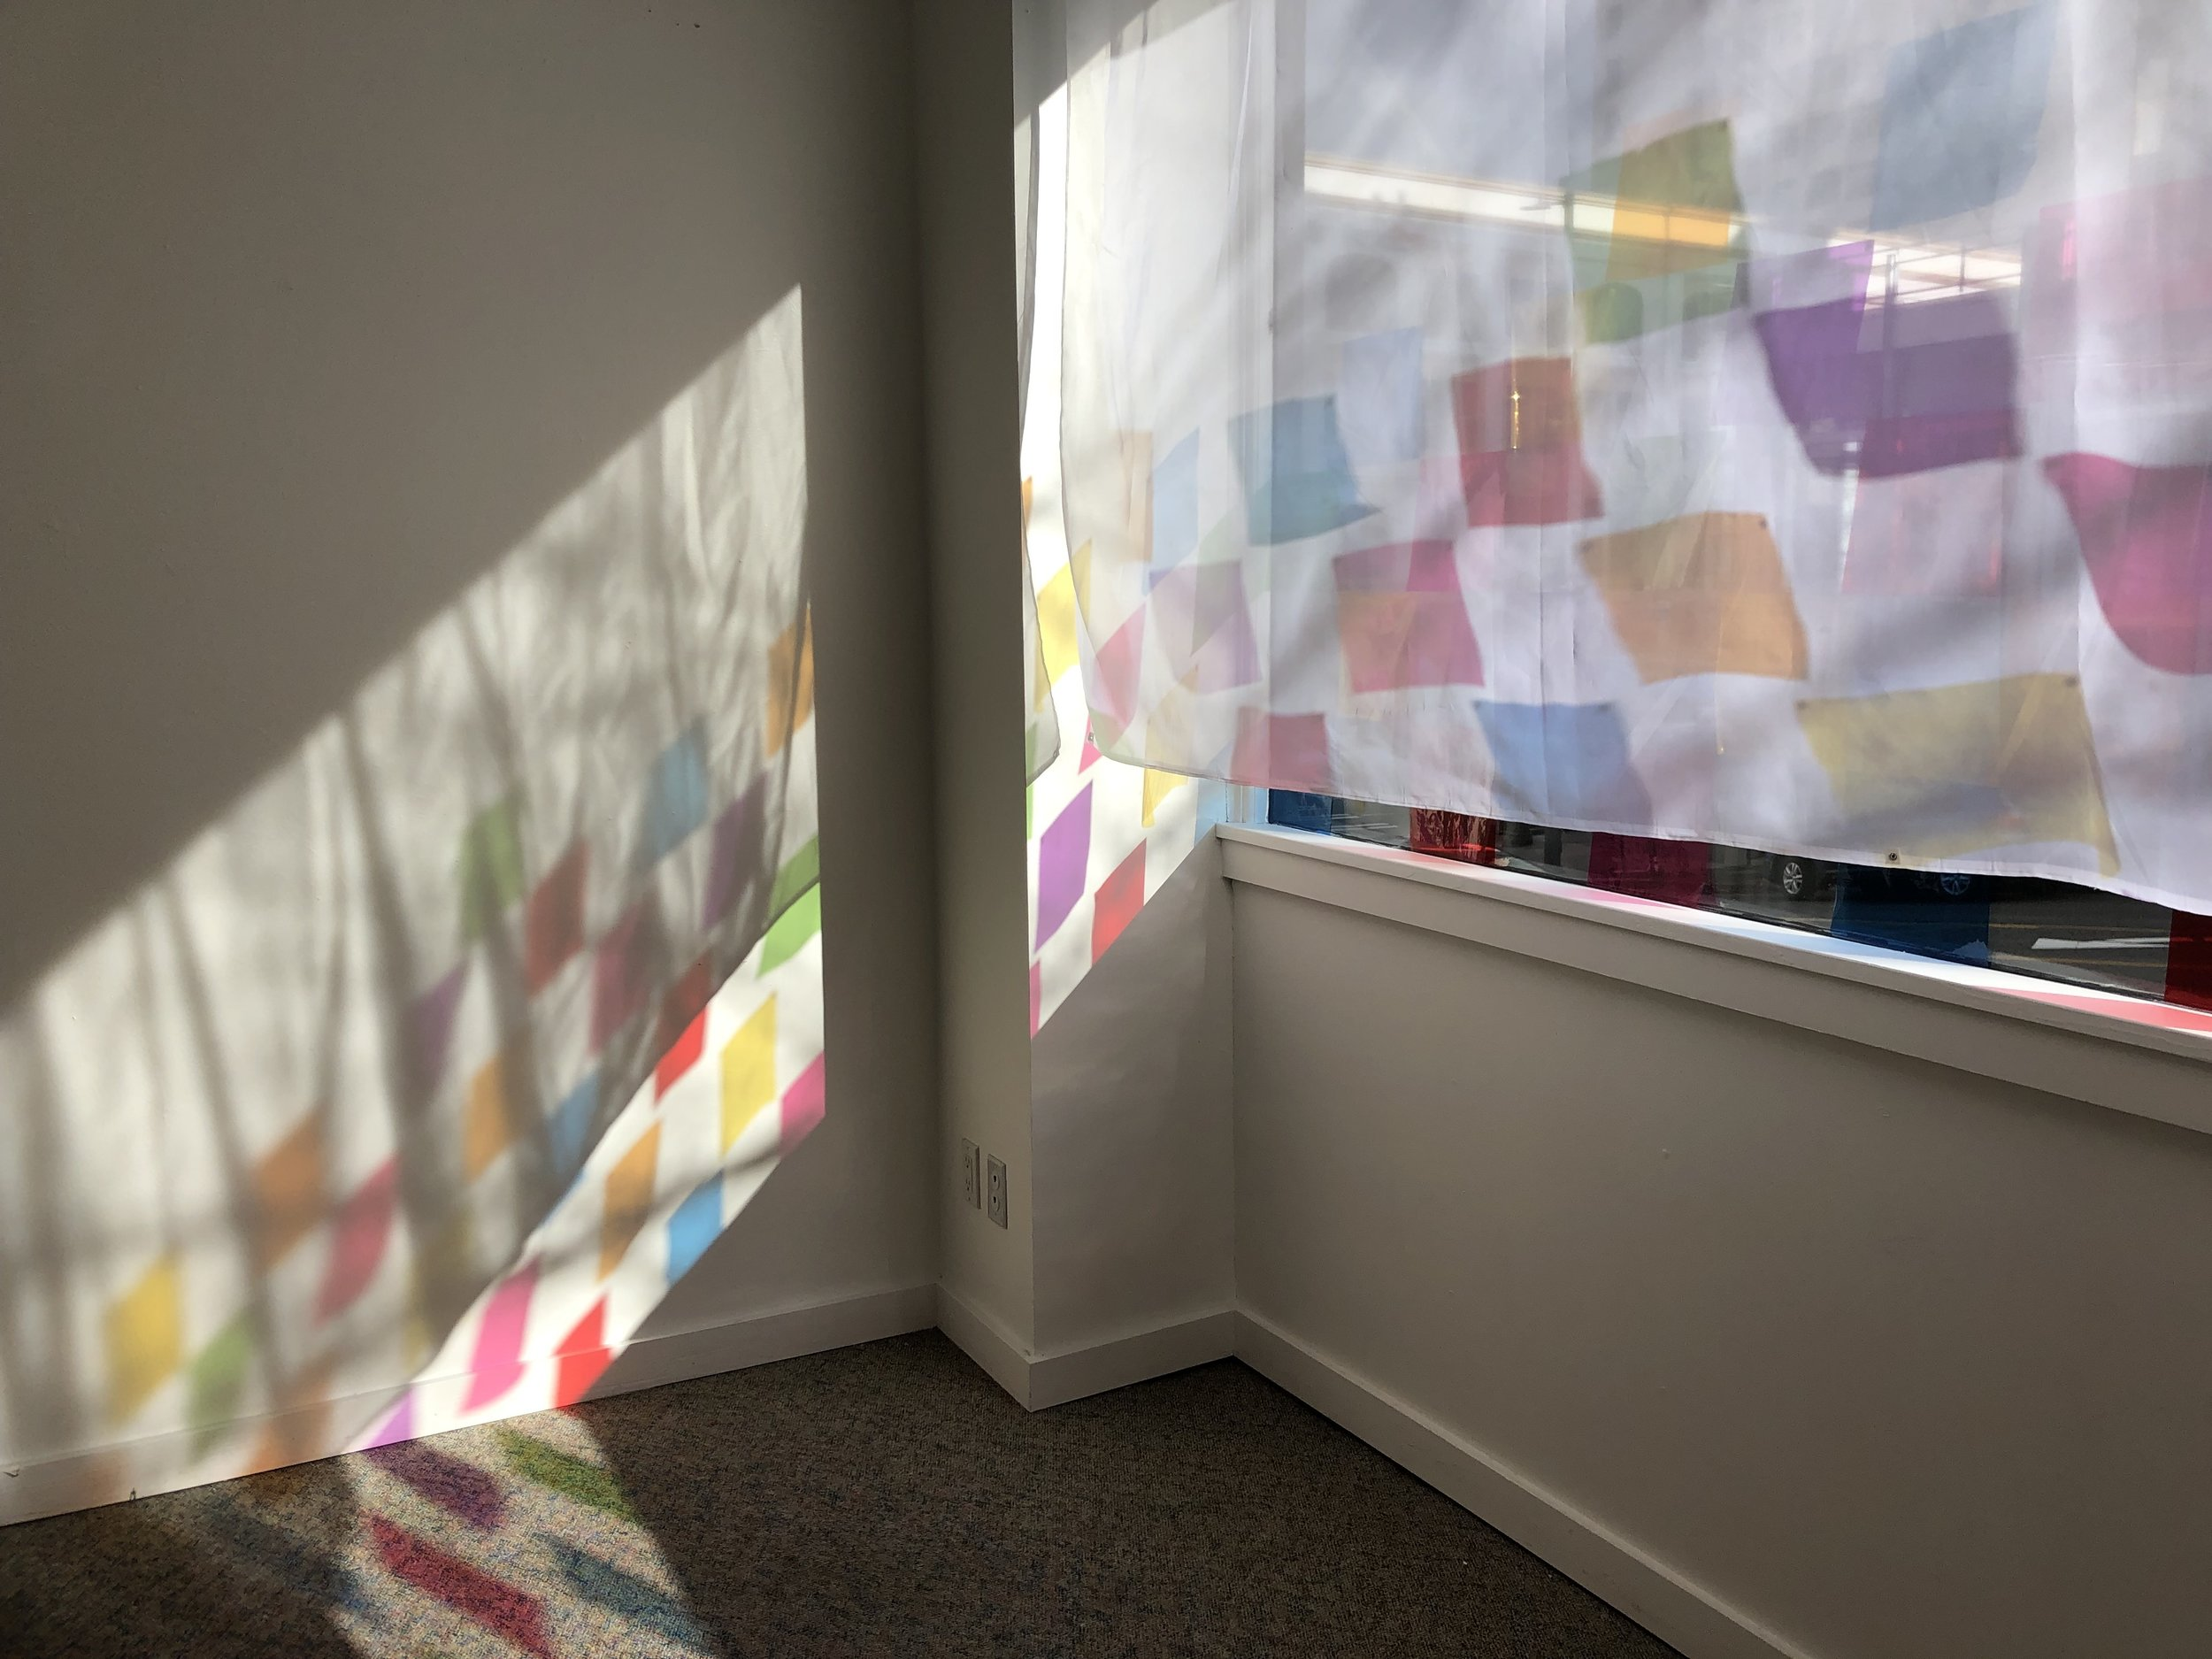 Full Spectrum Grid Space Part I, Cellophane, fabric, sunlight, 2019